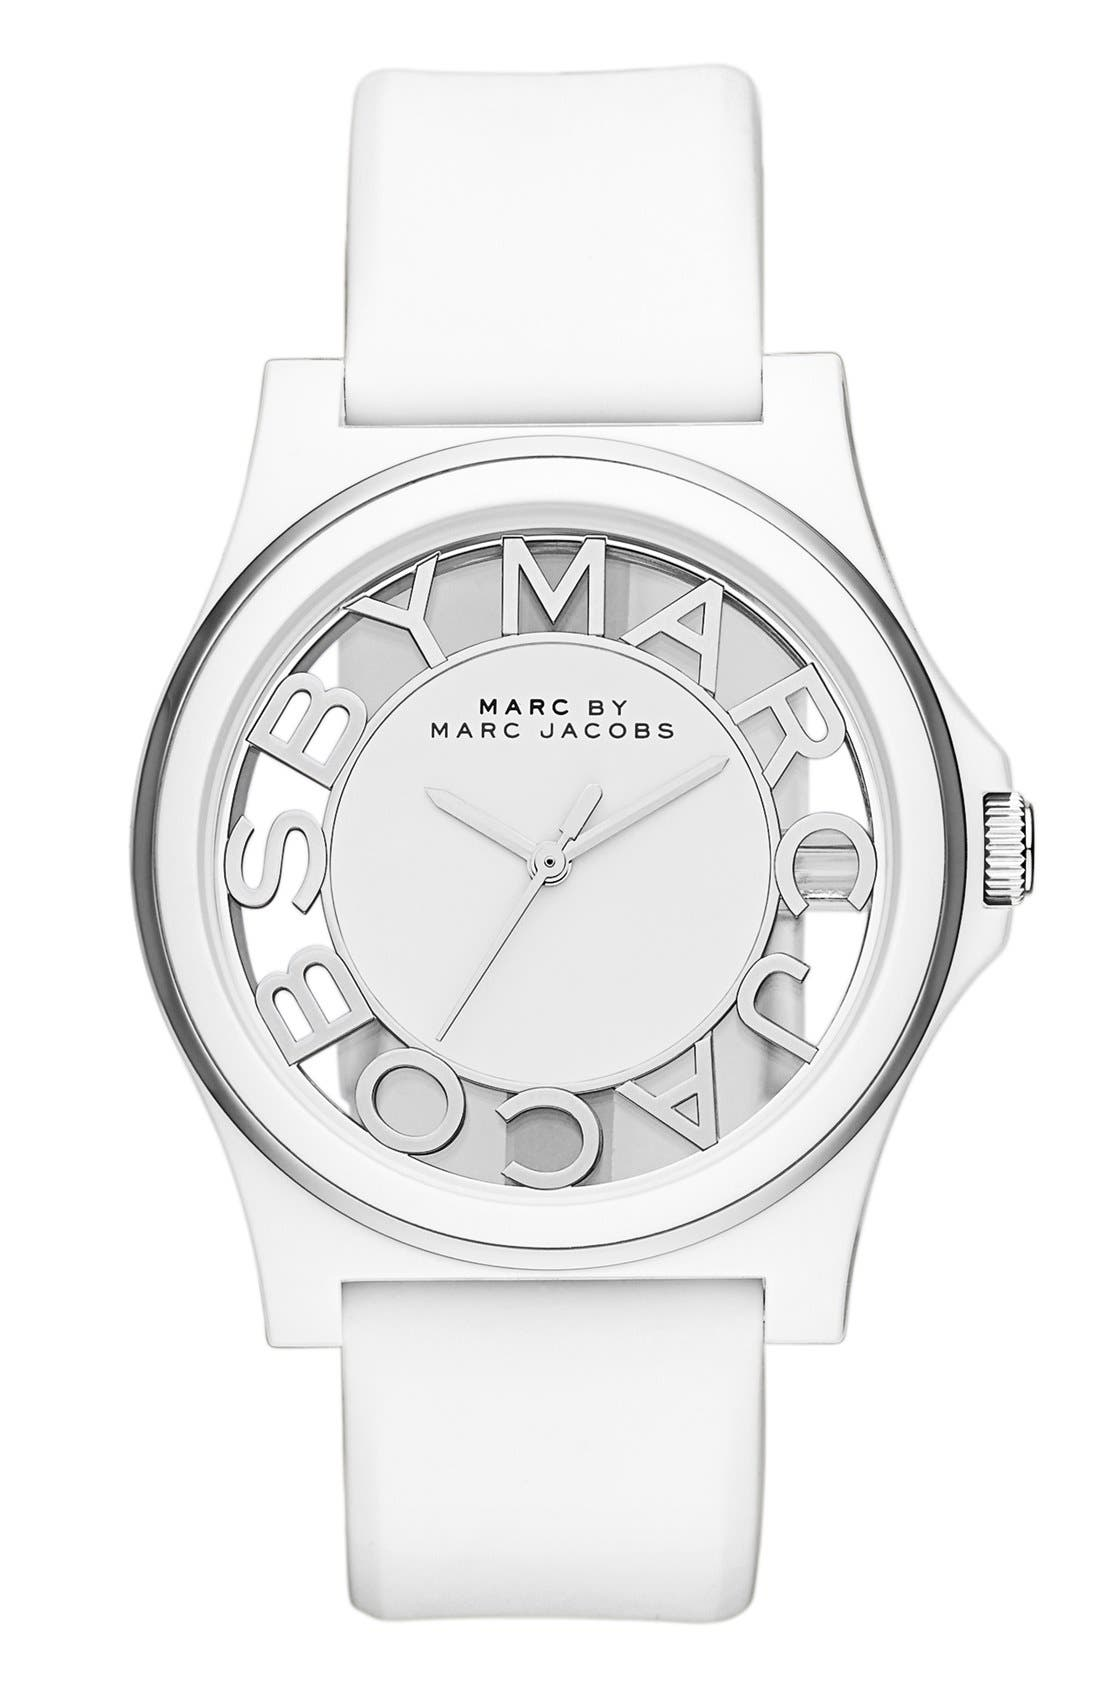 Main Image - MARC JACOBS 'Henry Skeleton' Silicone Strap Watch, 41mm